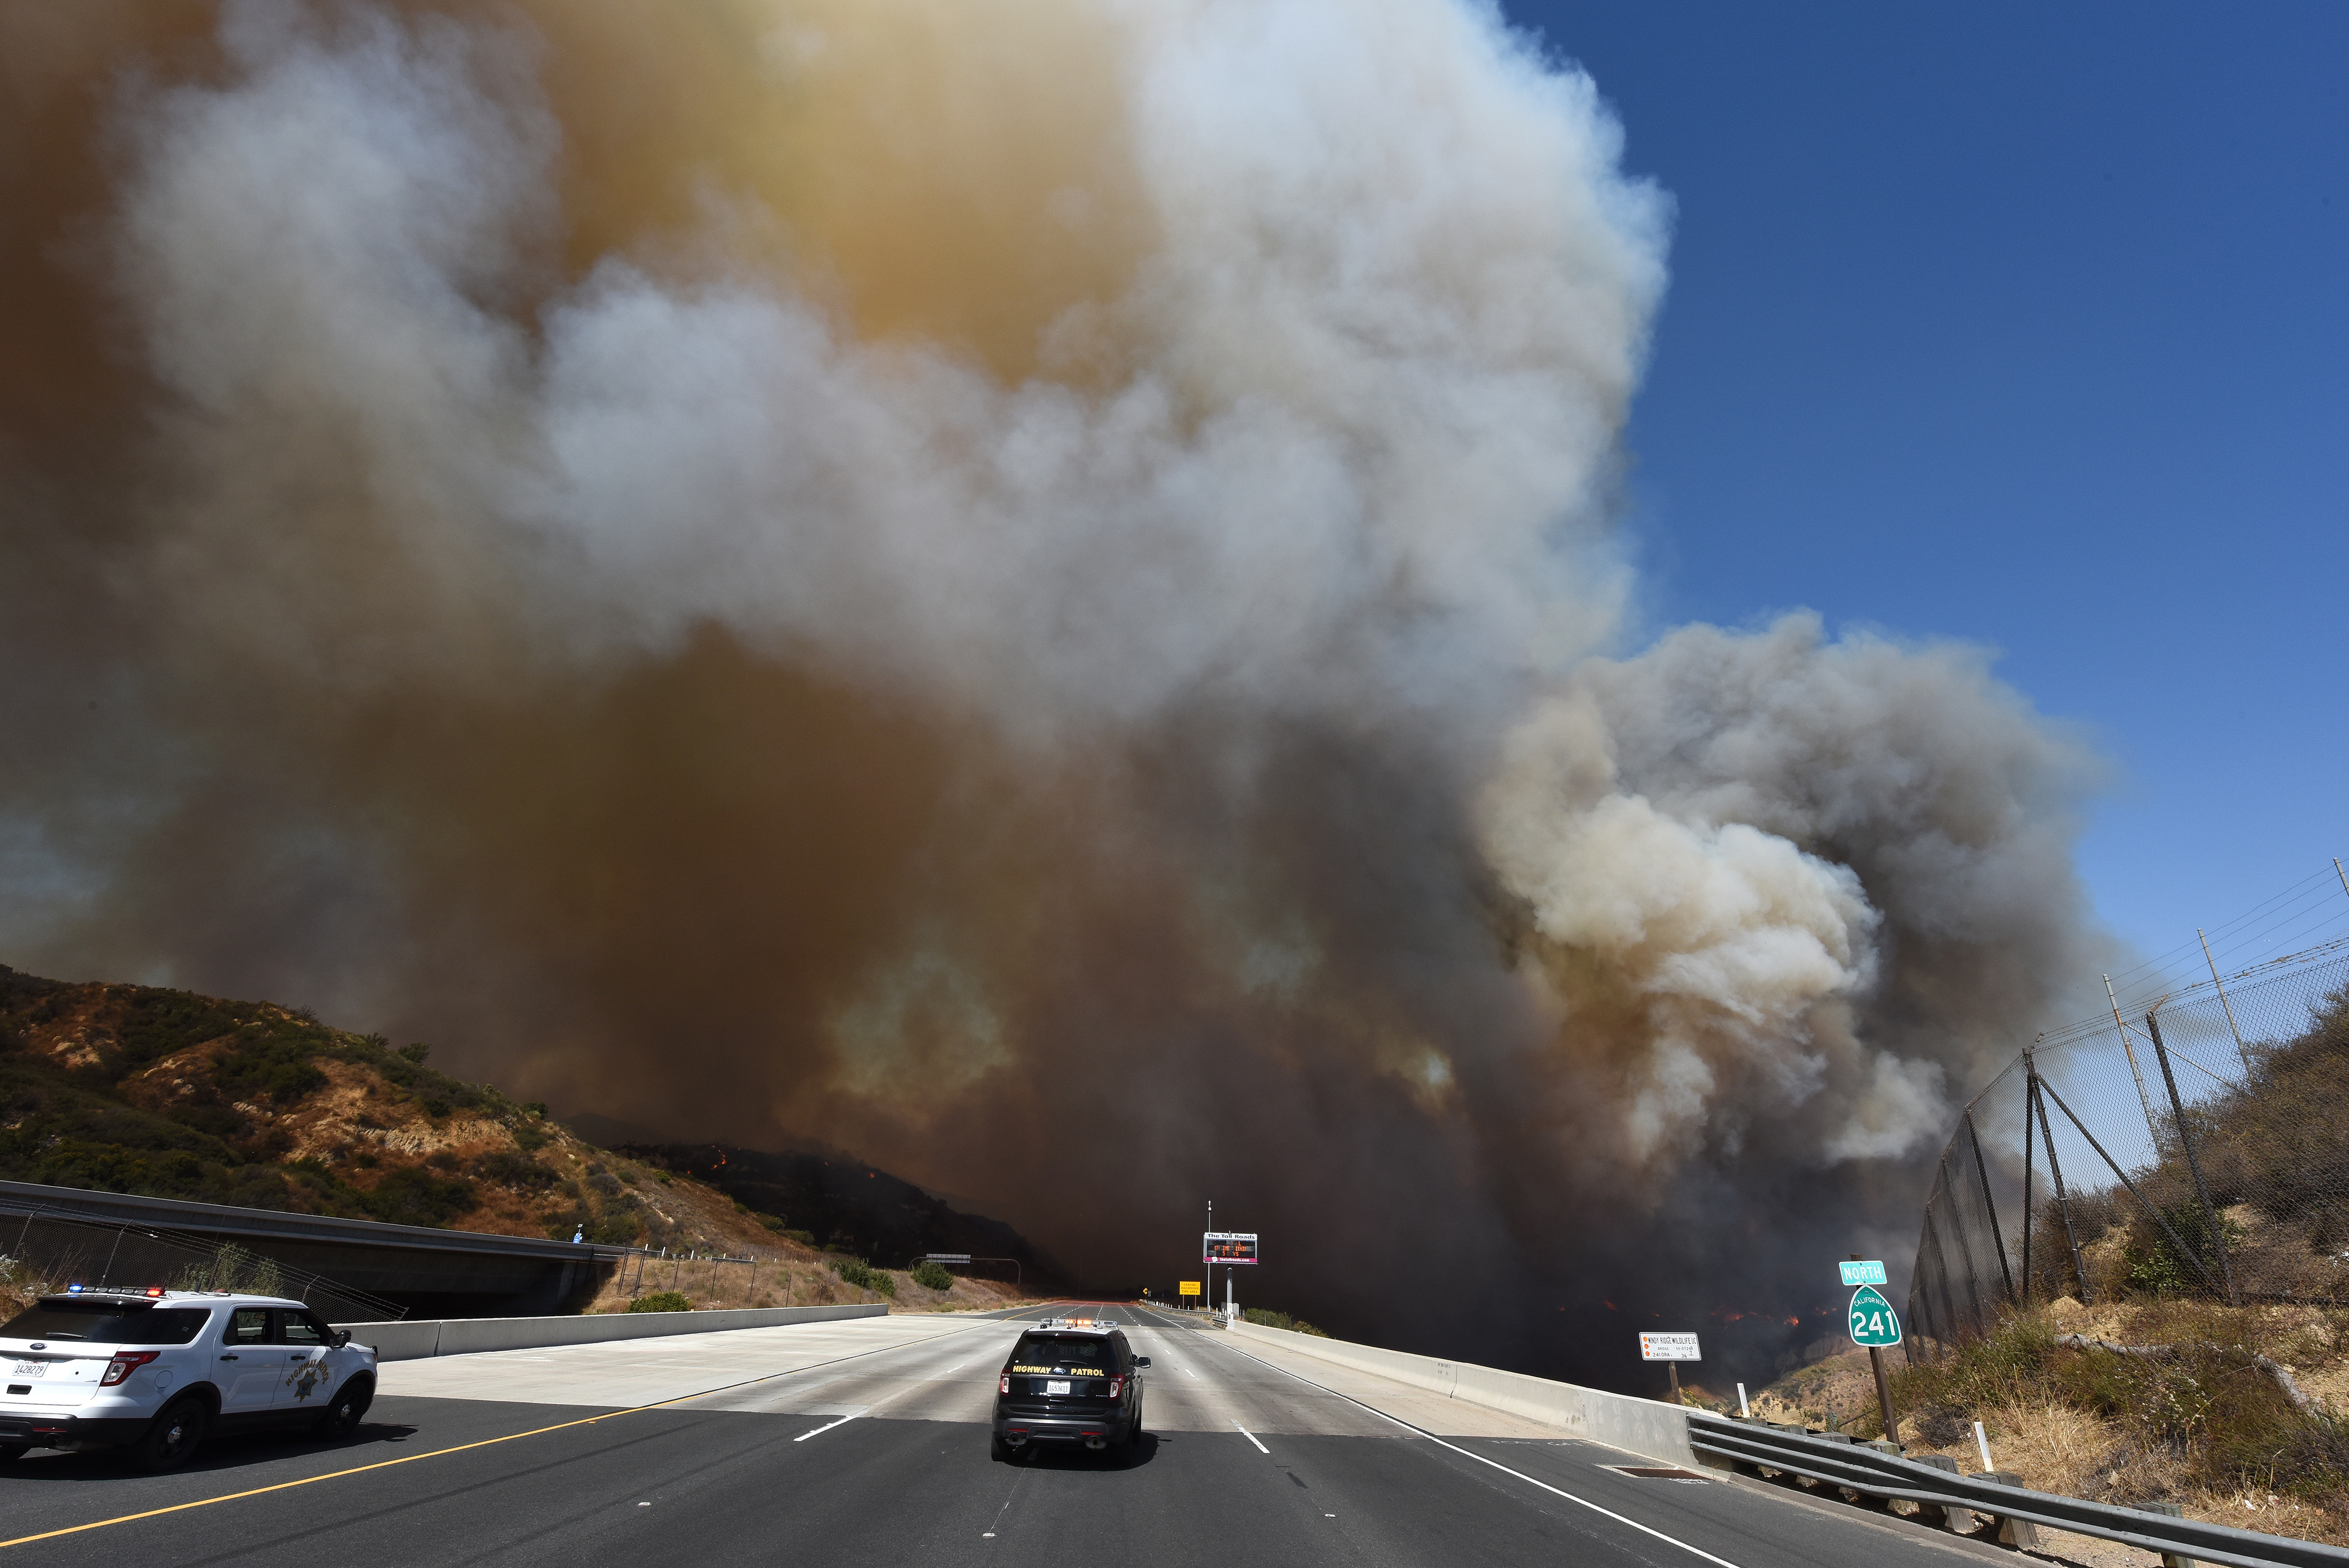 A police car blocks the 241 freeway as smoke from the Canyon 2 Fire covers the freeway near Orange, California, October 9, 2017 in Orange, California. / AFP PHOTO / Robyn Beck